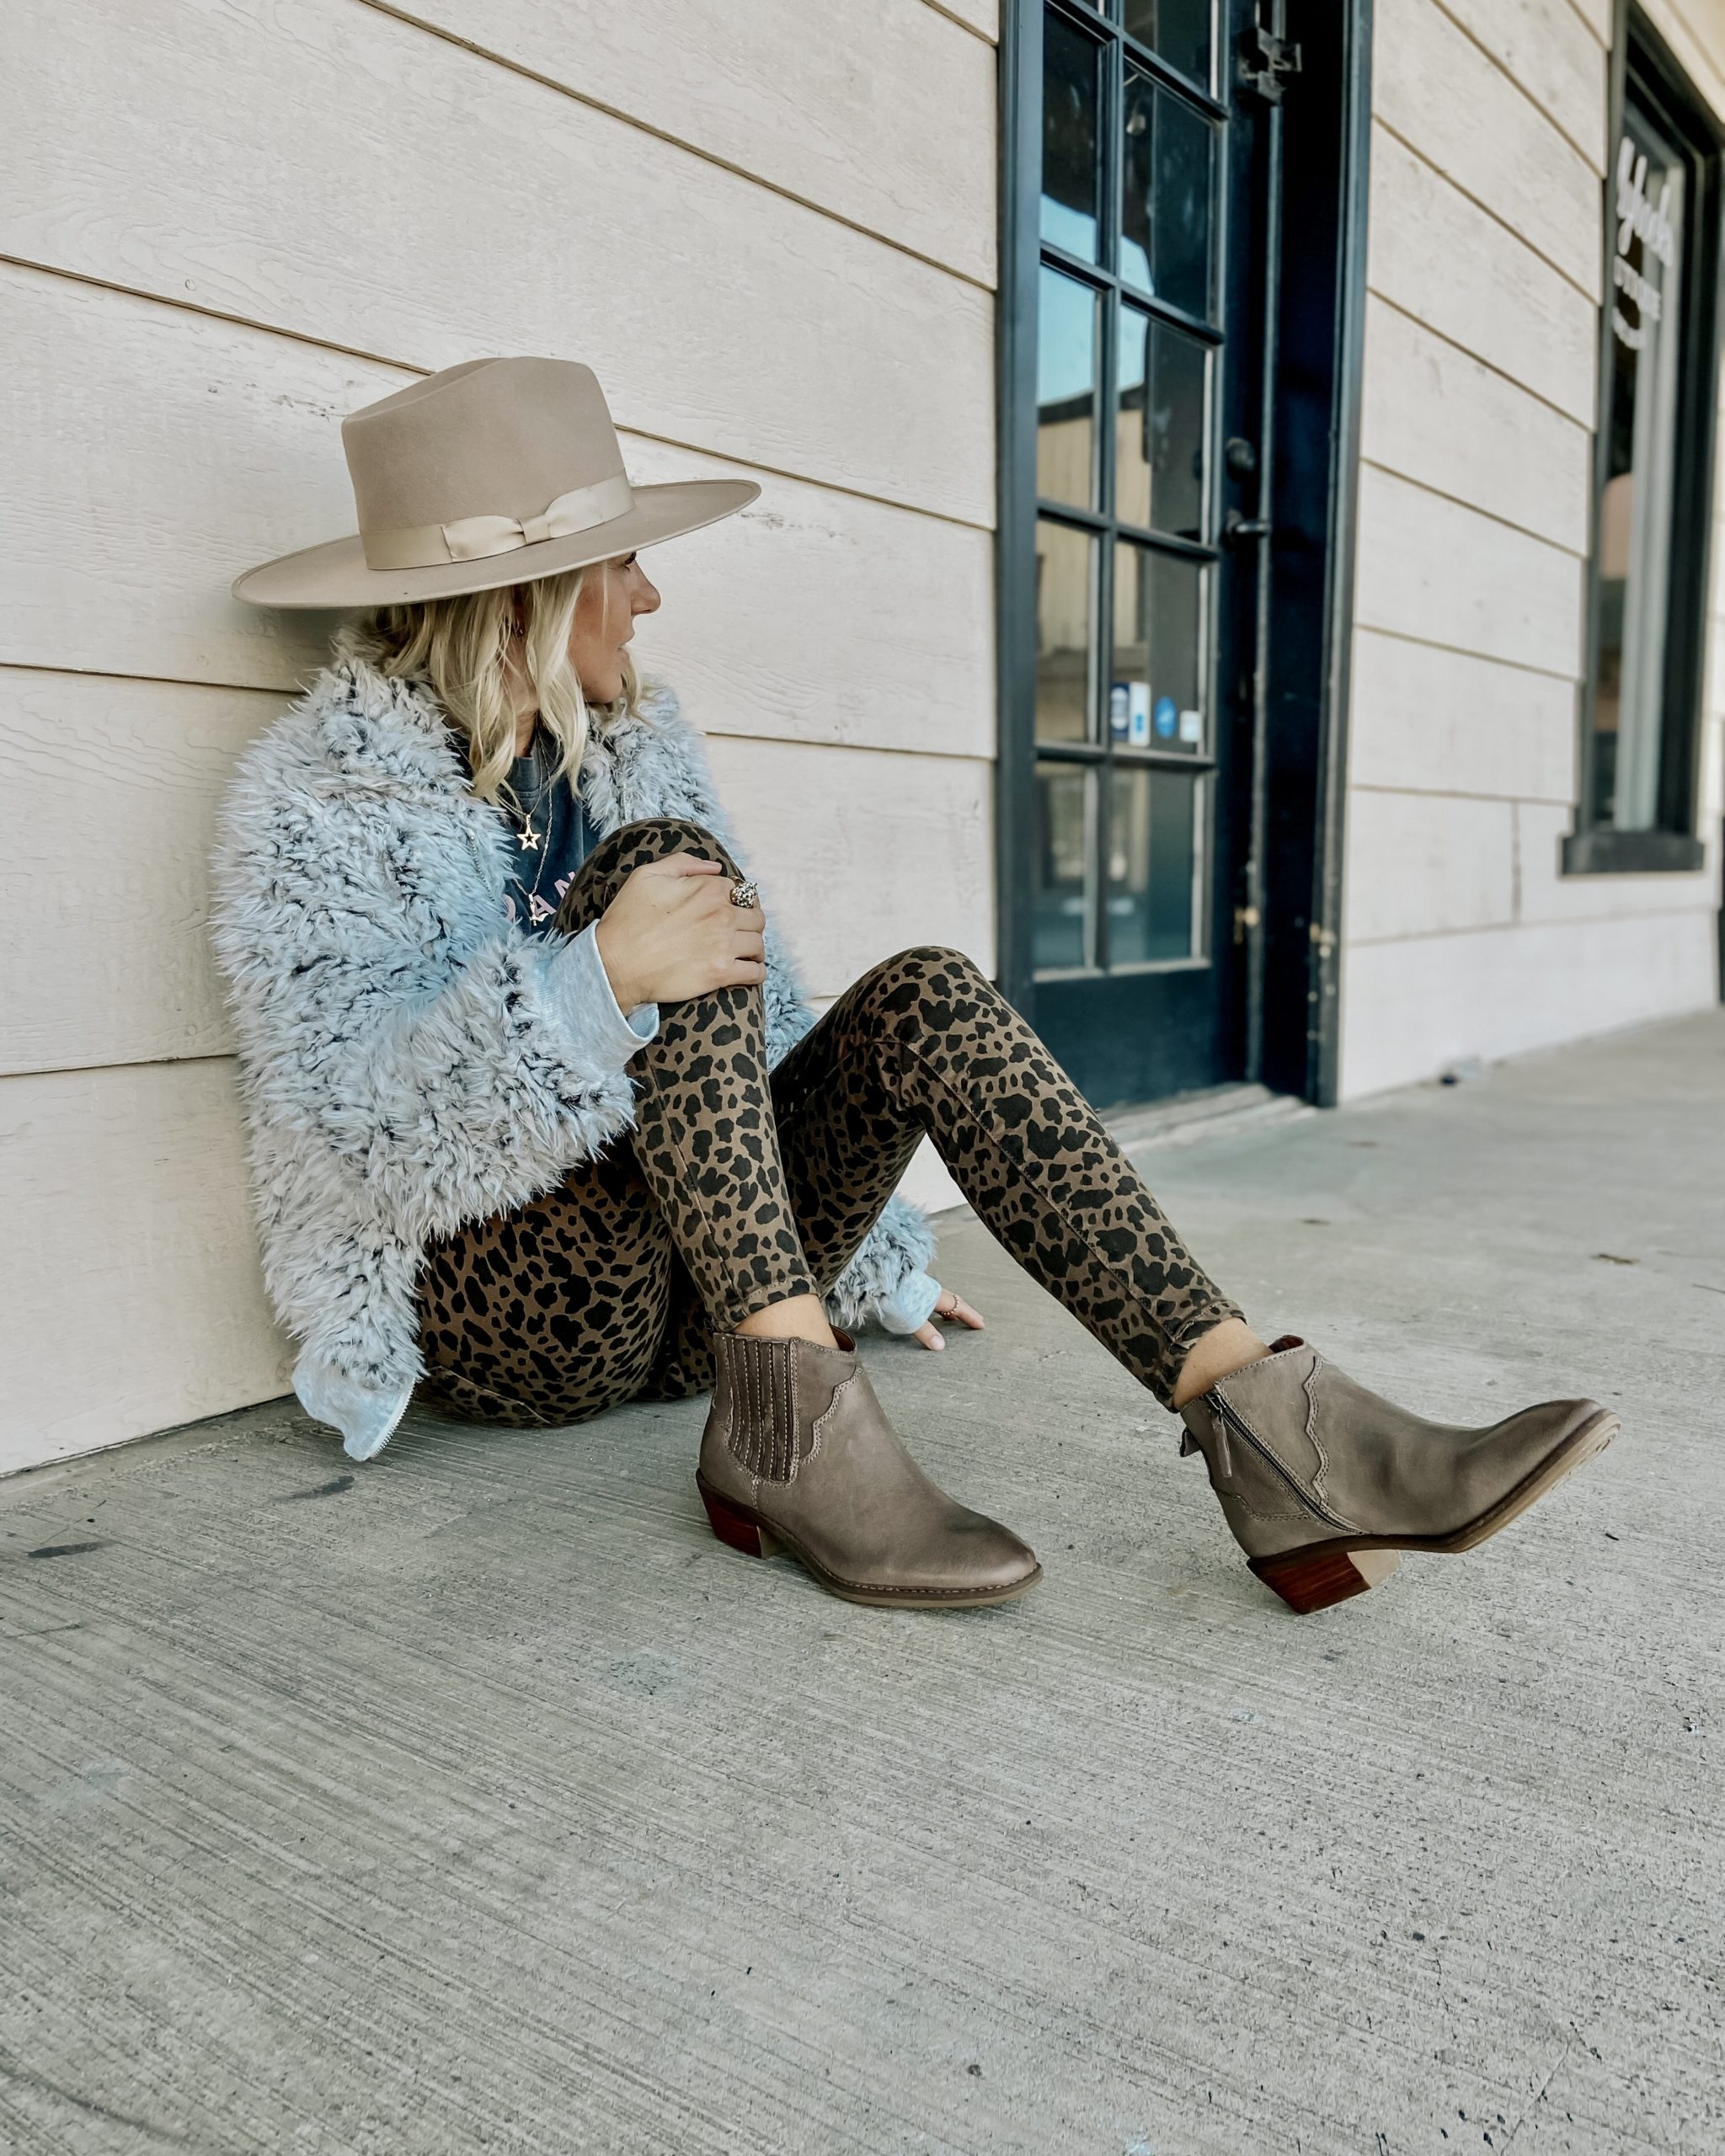 COMFORT MEETS STYLE WITH COMFORTIVA- Jaclyn De Leon Style + Looking for comfortable shoes but don't want to sacrafice on style. Comfortiva shoes are Italian leather shoes with mutliple footbed technologies for the perfect comfort